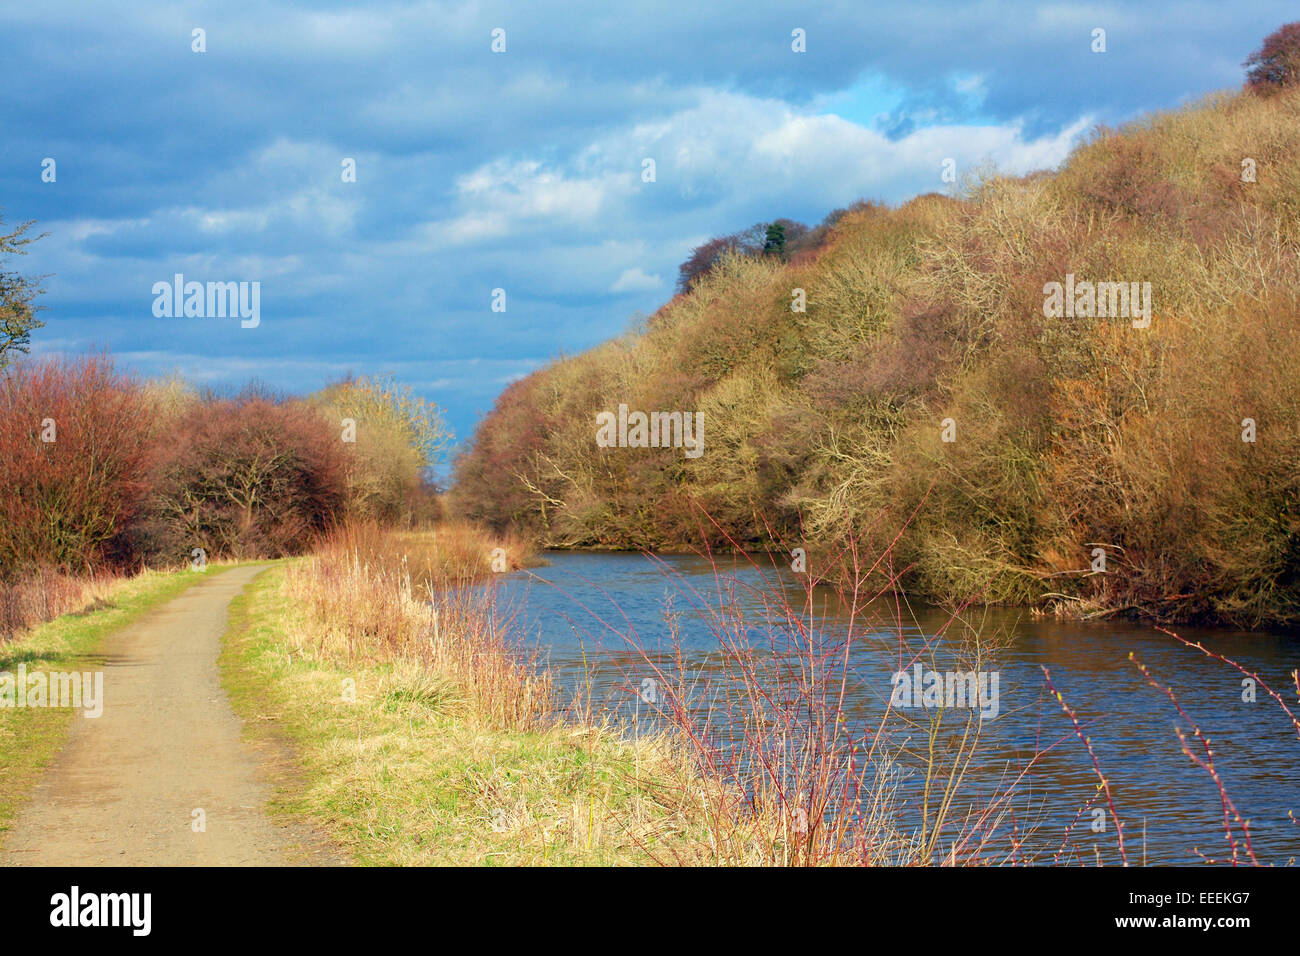 Forth & Clyde Canal, Kilsyth, North Lanarkshire, Scotland in April - Stock Image